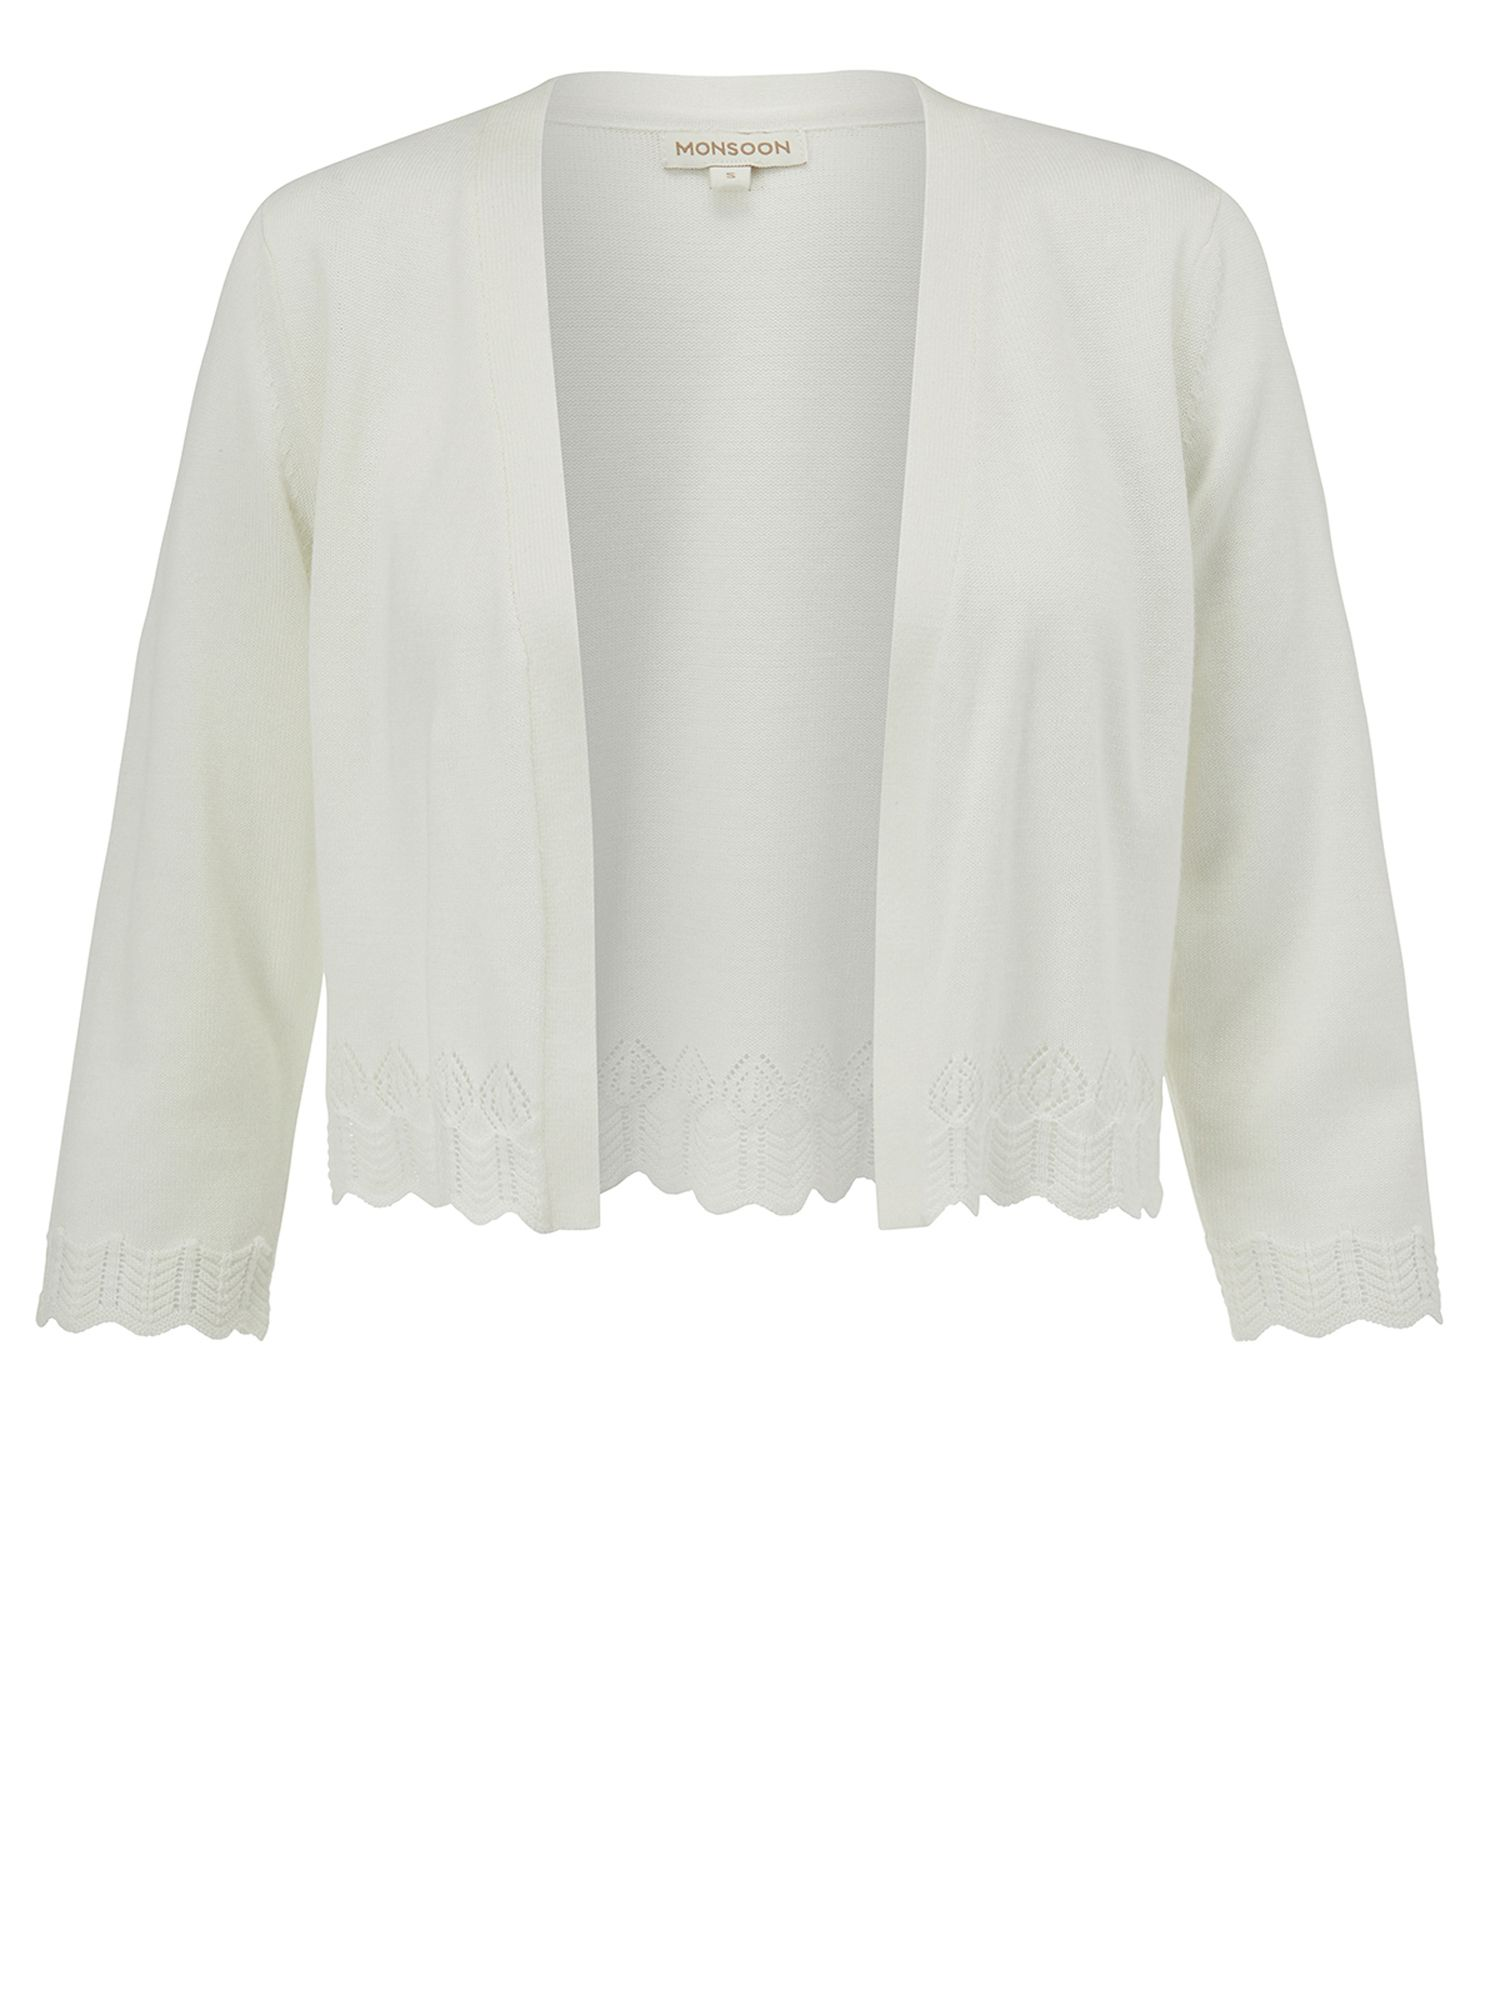 Monsoon Paige Pointelle Hem Shrug White